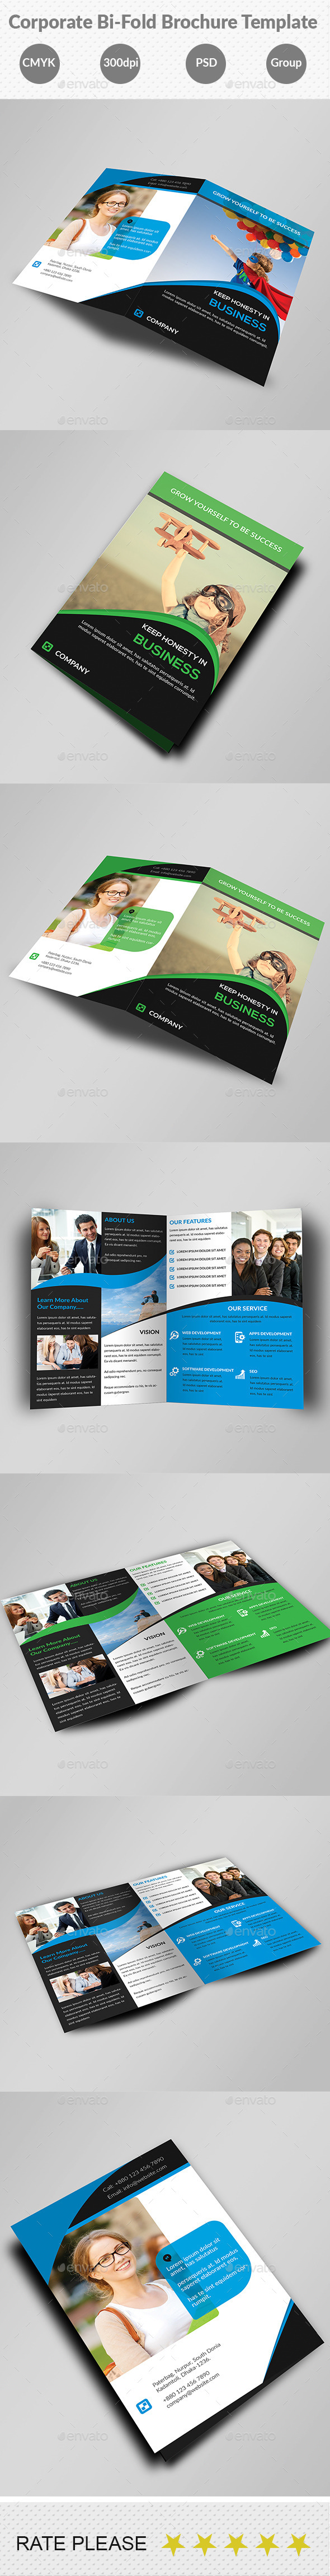 Corporate Bi-Fold Business Brochure Template - Corporate Brochures